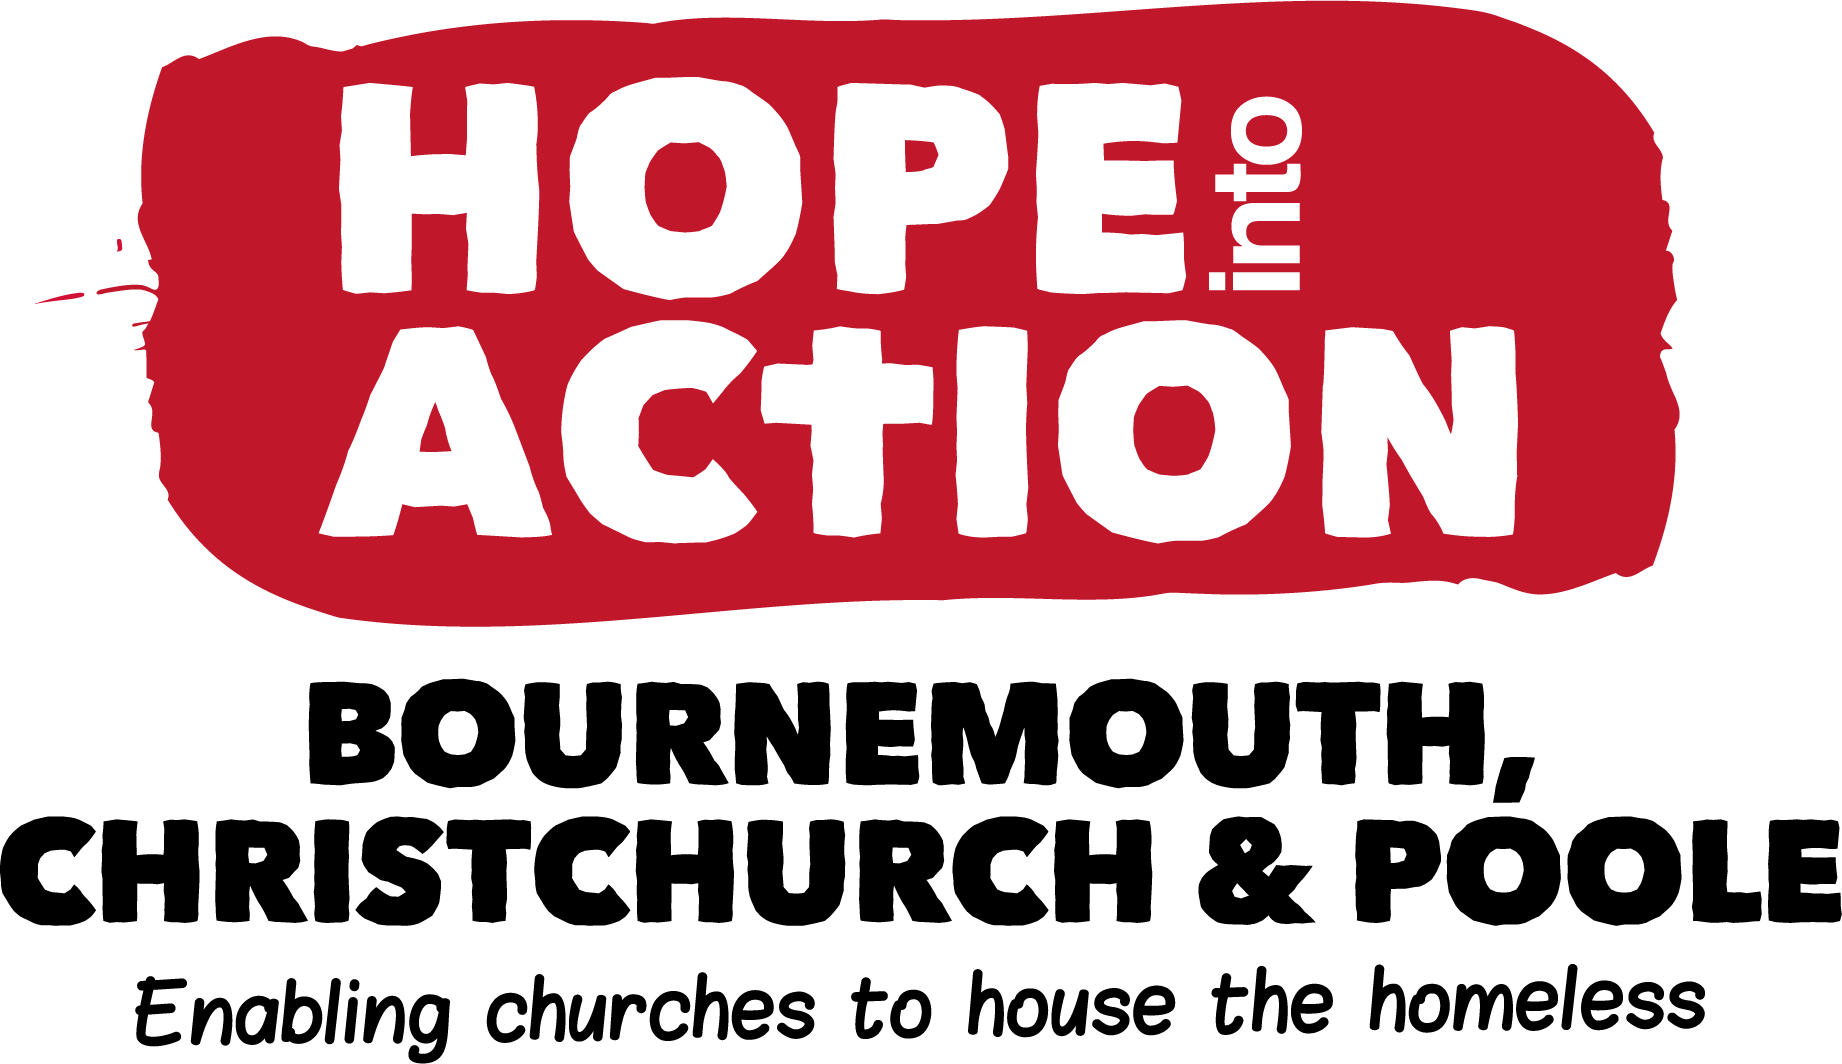 Hope into Action: Bournemouth, Christchurch and Poole